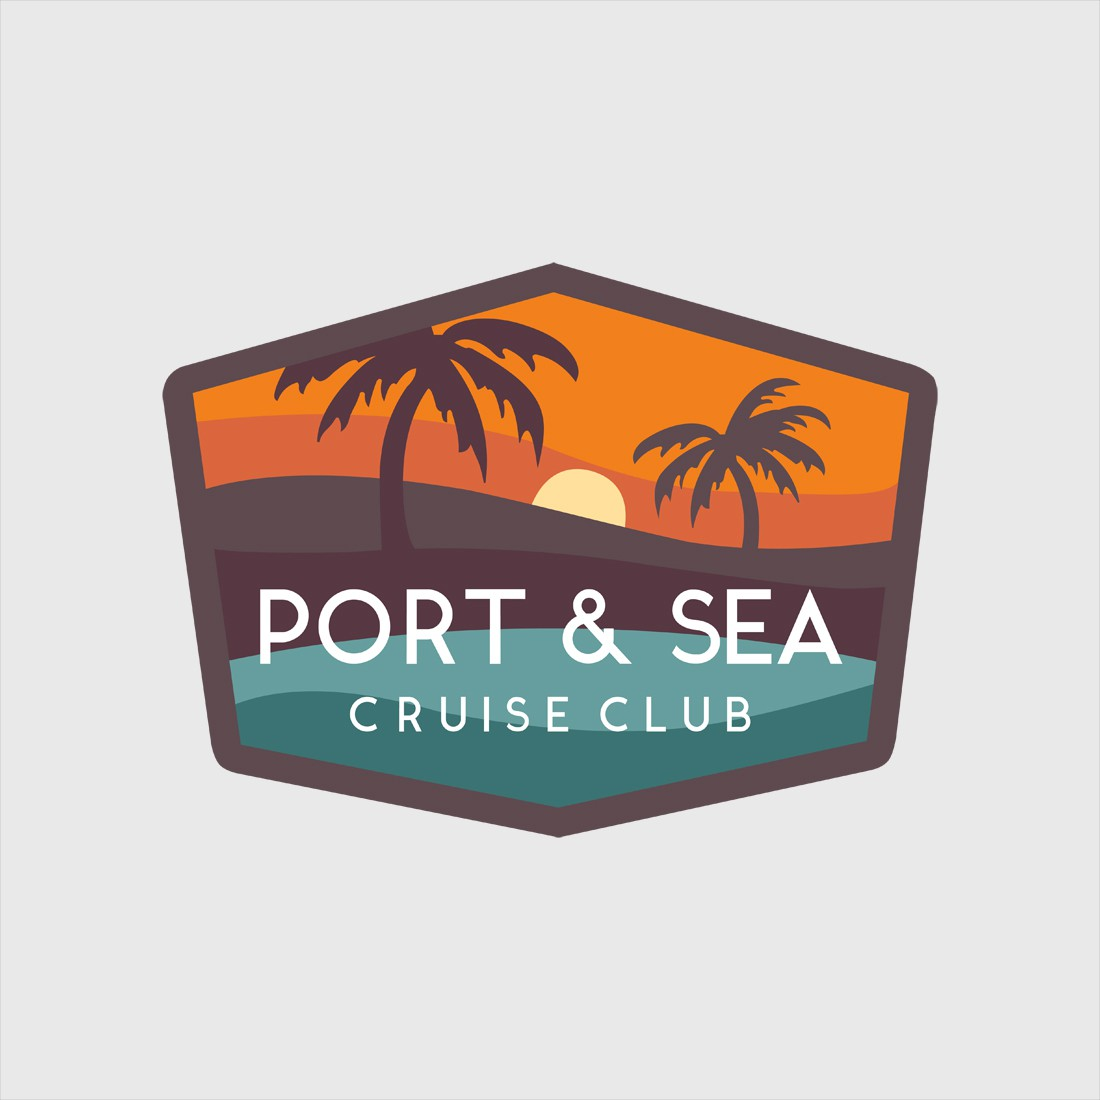 A physical products brand in the cruising space.